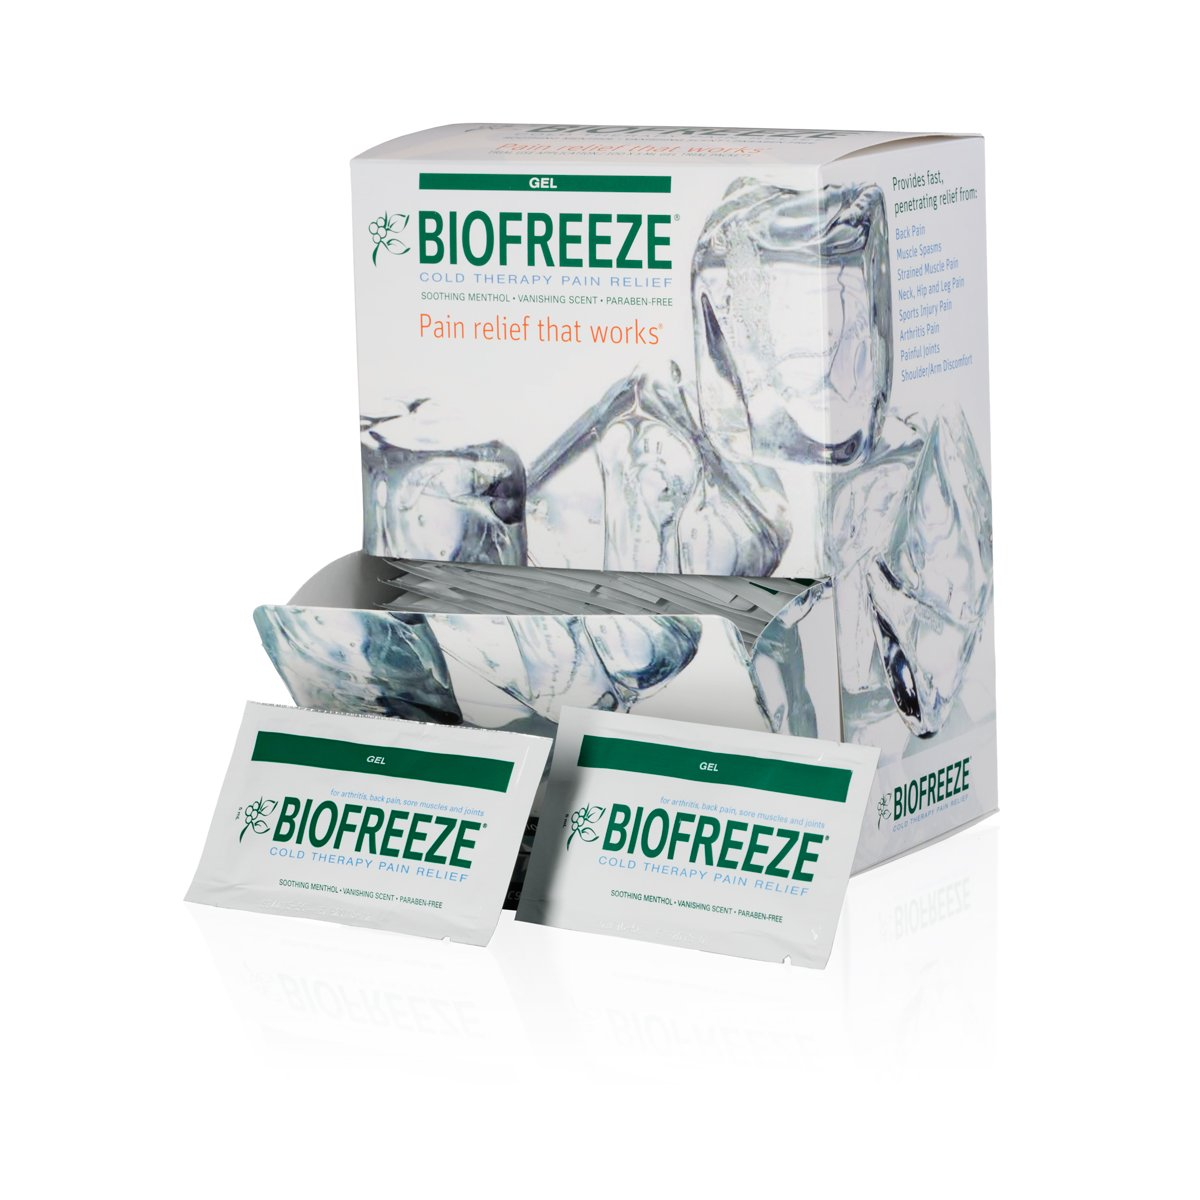 Biofreeze On-the-Go Pain Relief Gel, 5 mL Packets, 100 Count, Green (Packaging May Vary) by Biofreeze